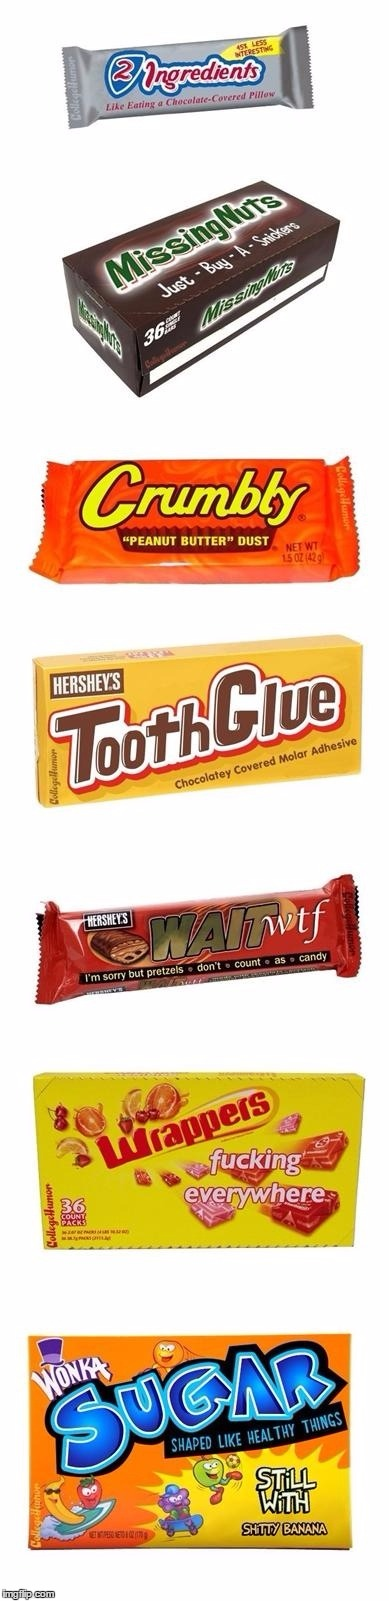 Some slightly more realistic names for candies... | image tagged in candy names,memes,truth in advertising,funny,funny candy,candy | made w/ Imgflip meme maker